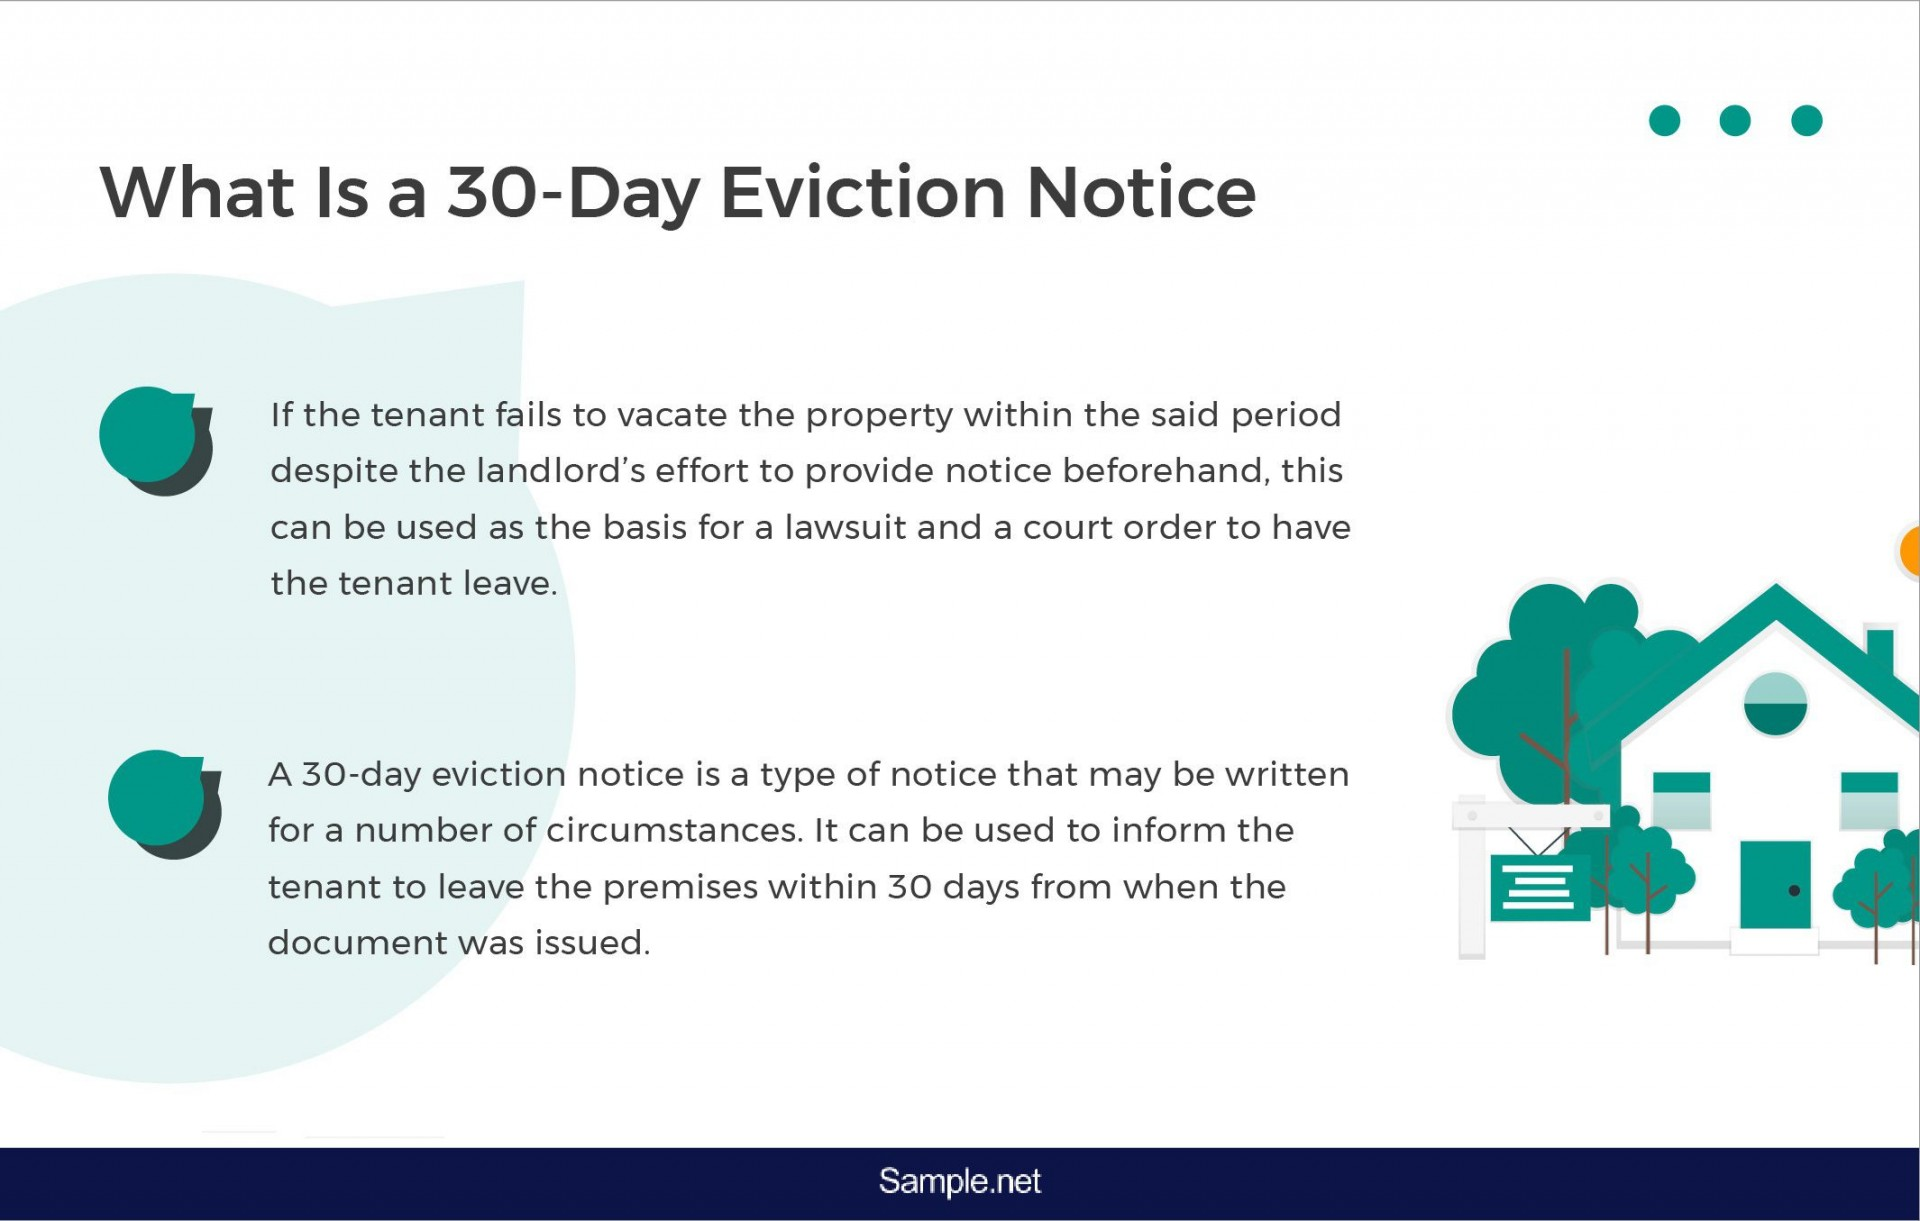 013 Fearsome 30 Day Eviction Notice Template Inspiration  Pdf Form1920